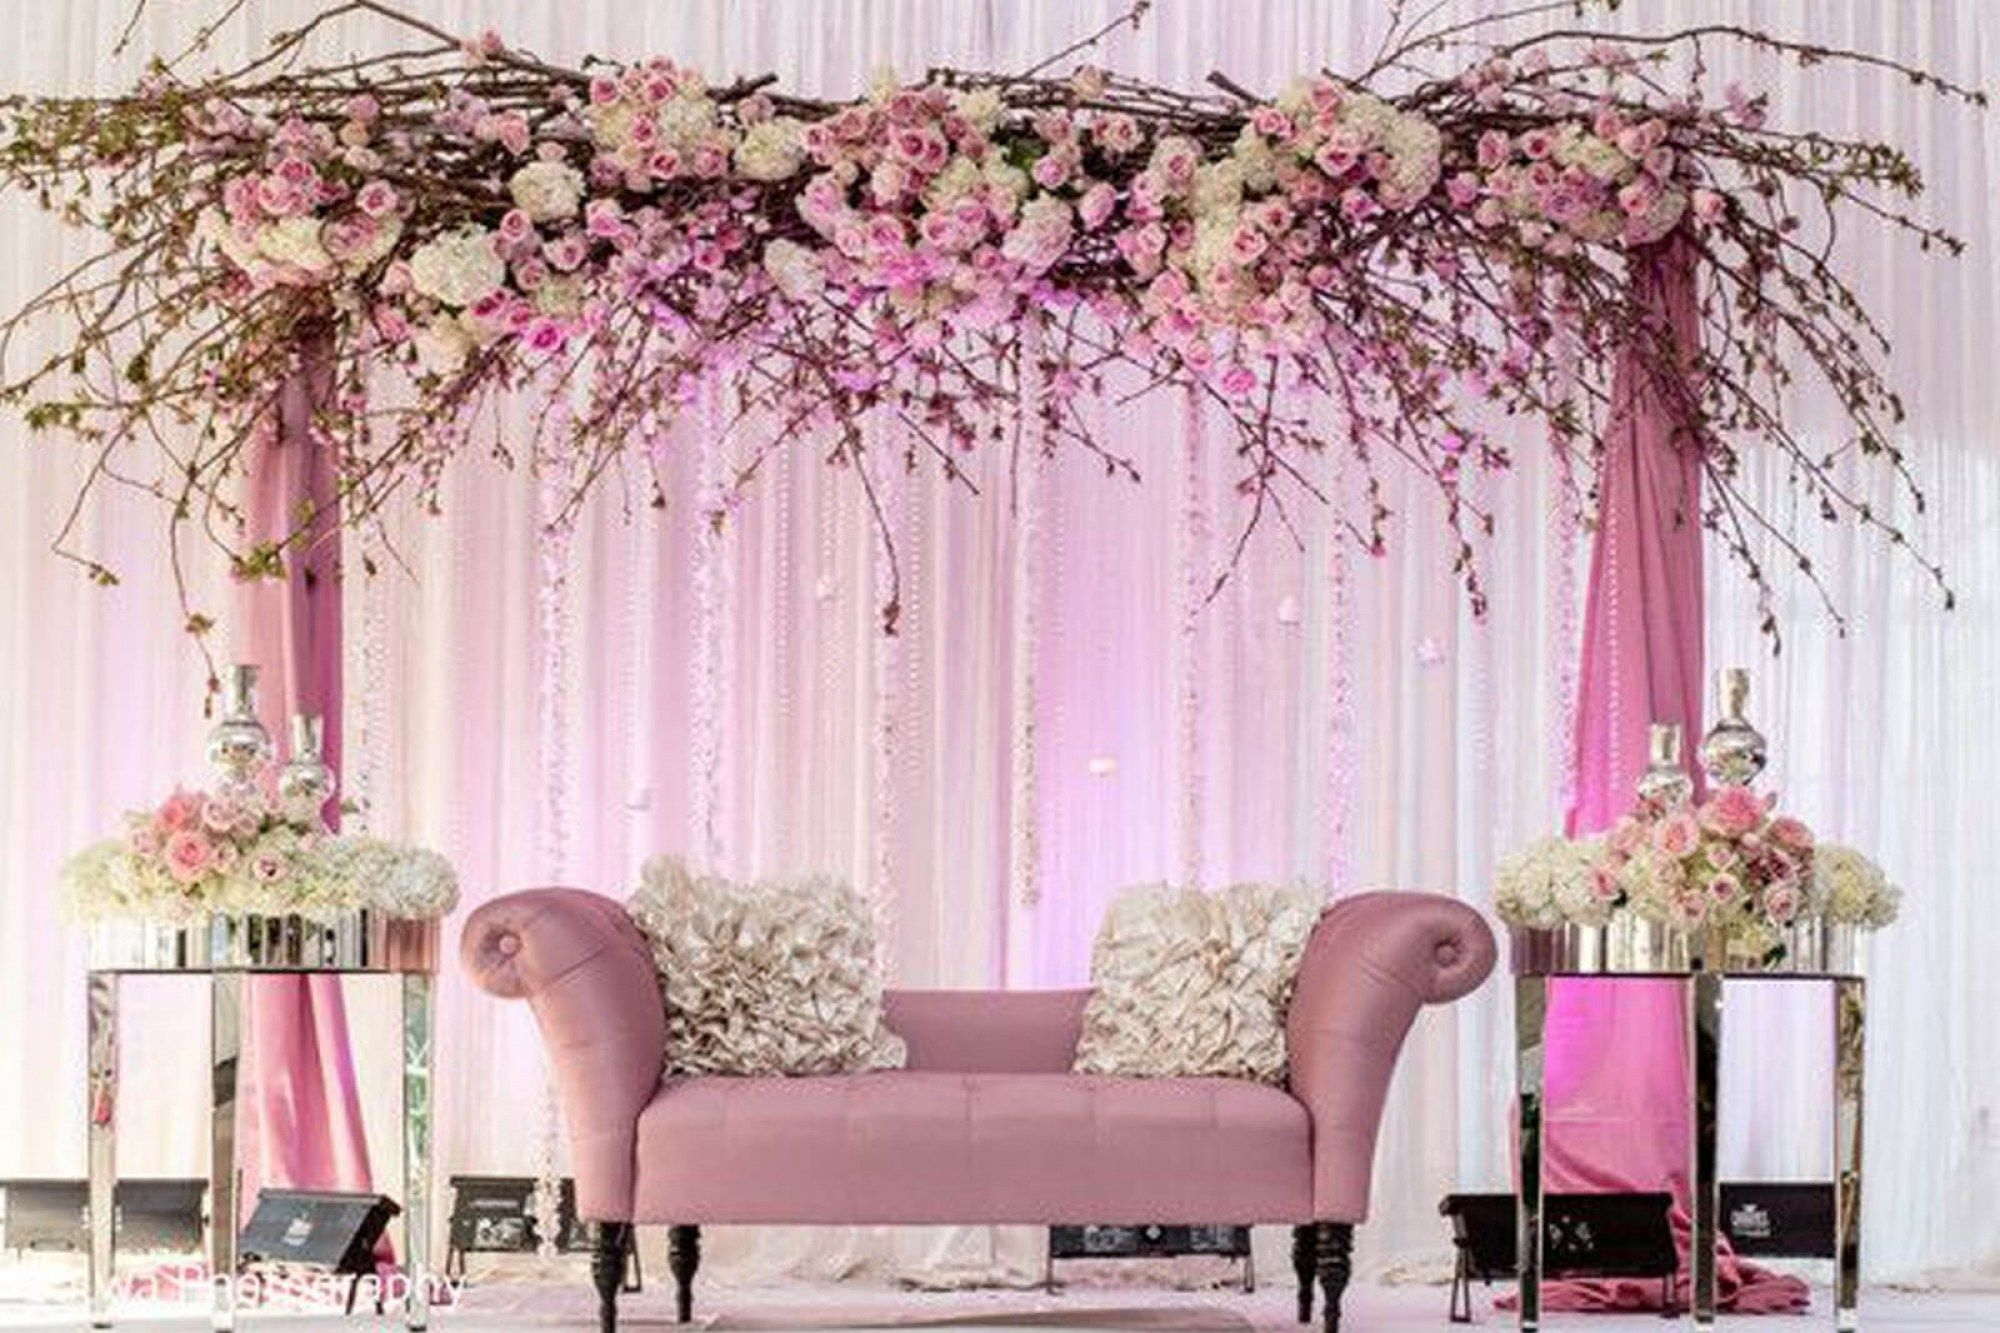 32 Purple And White Decoration For Wedding | Wedding Inspirations ...